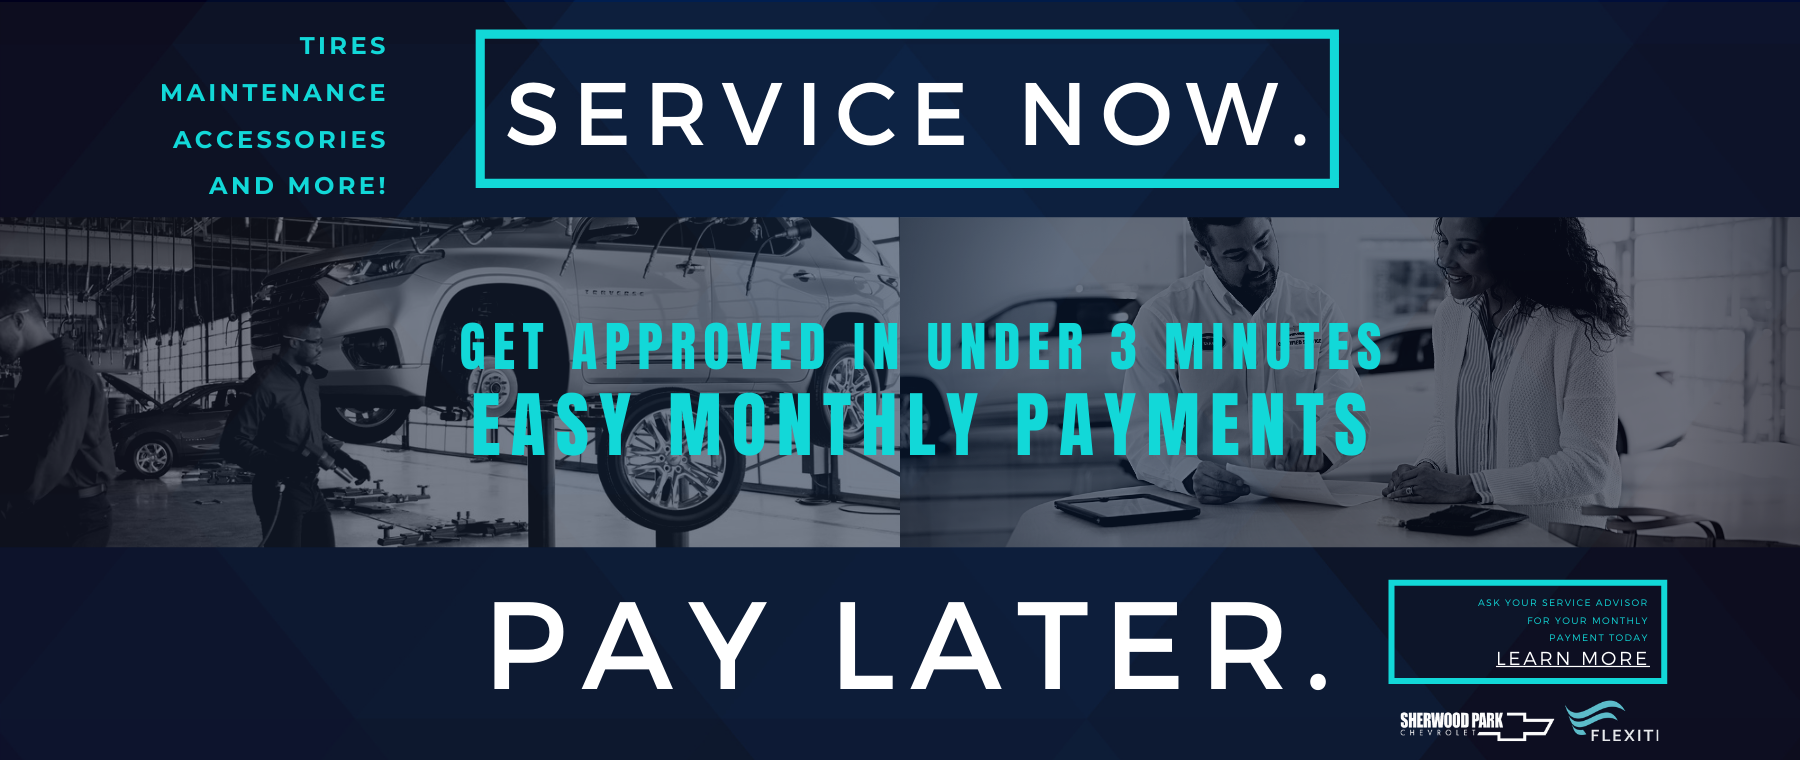 Service Now. Pay Later. Flexiti.